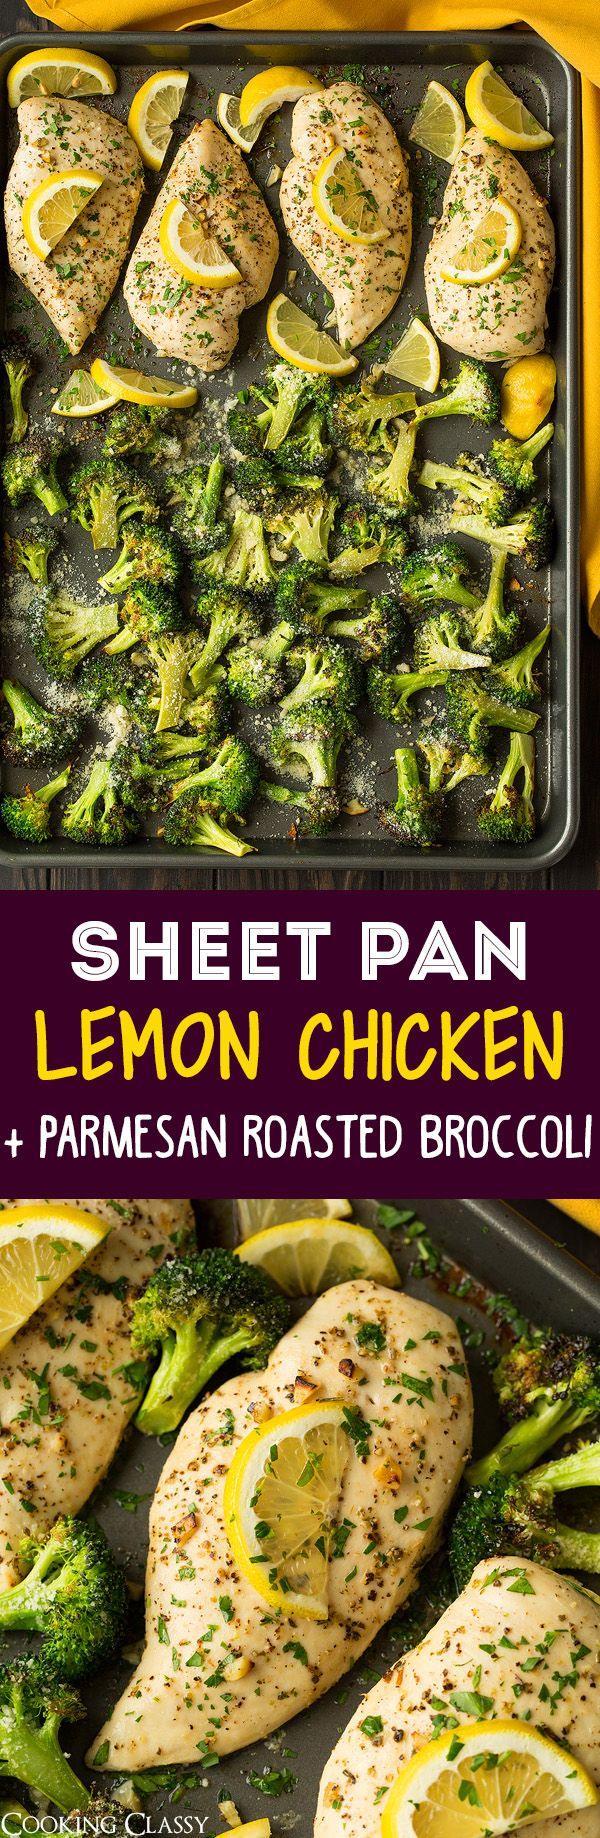 Sheet Pan Lemon Chicken with Parmesan Roasted Broccoli - Cooking Classy